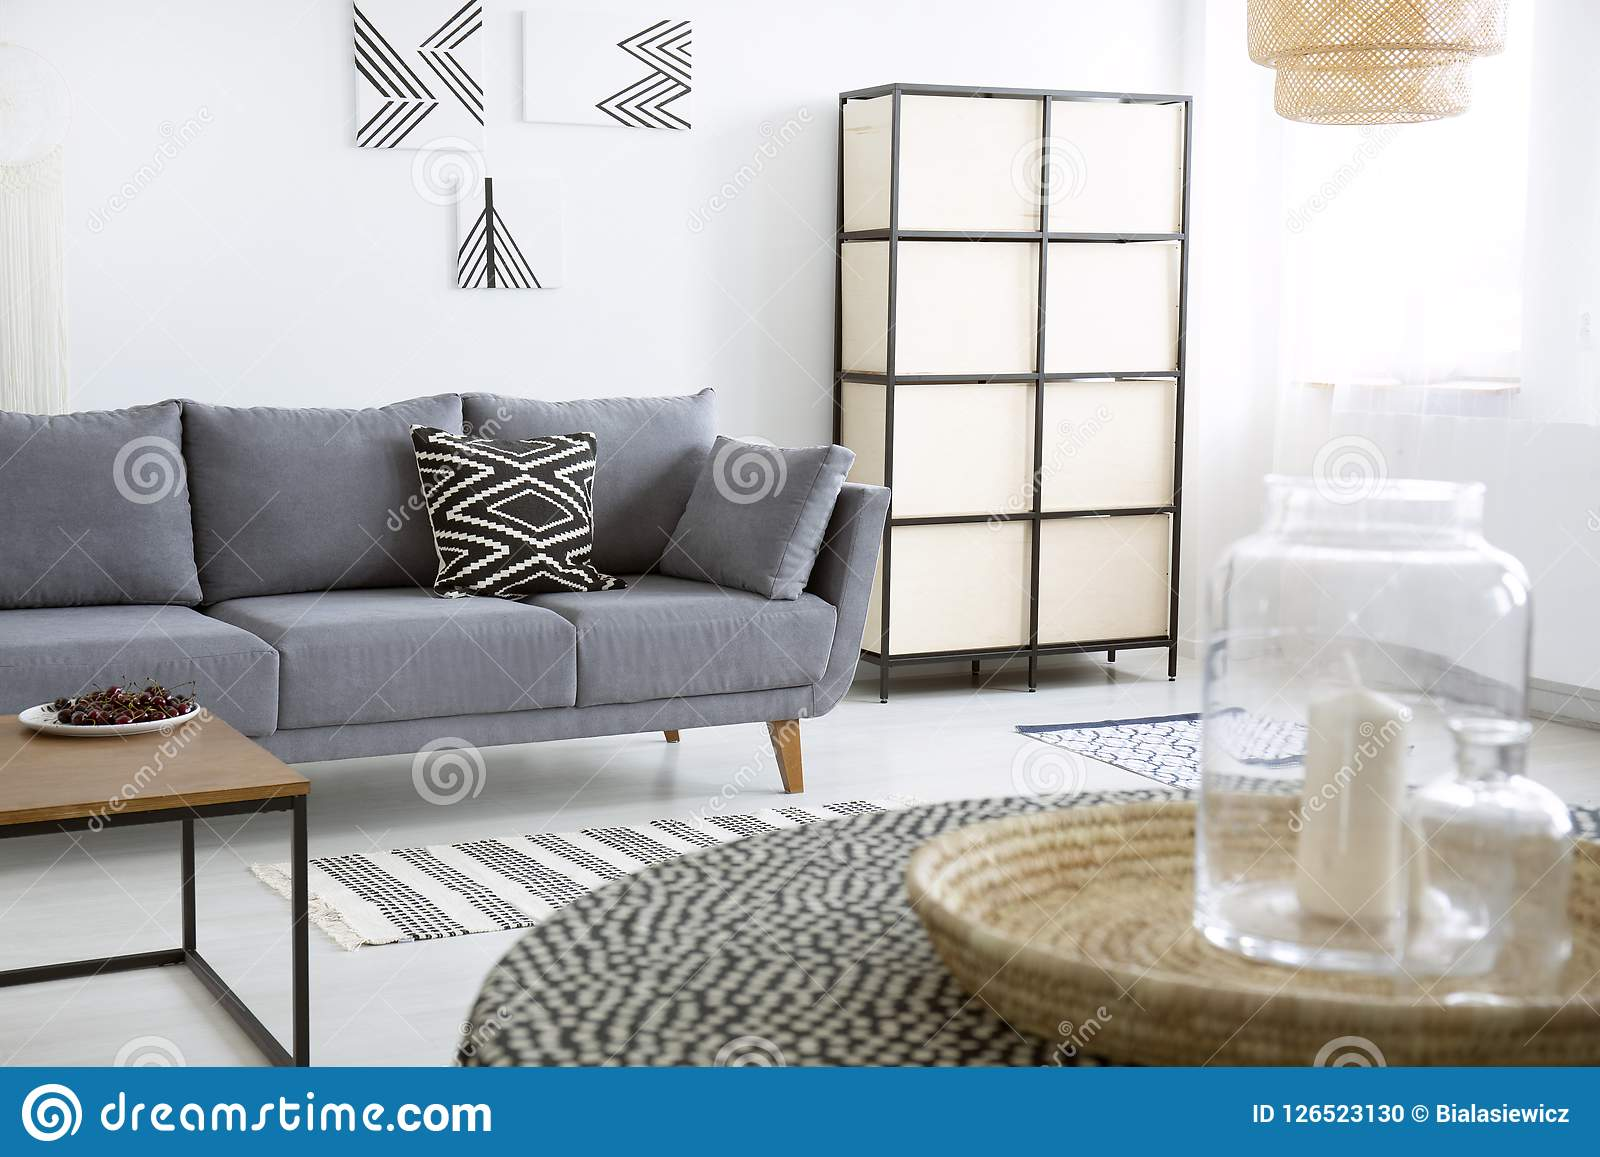 Sofa Next Grey Patterned Cushion On Grey Sofa Next To Screen In Modern Flat